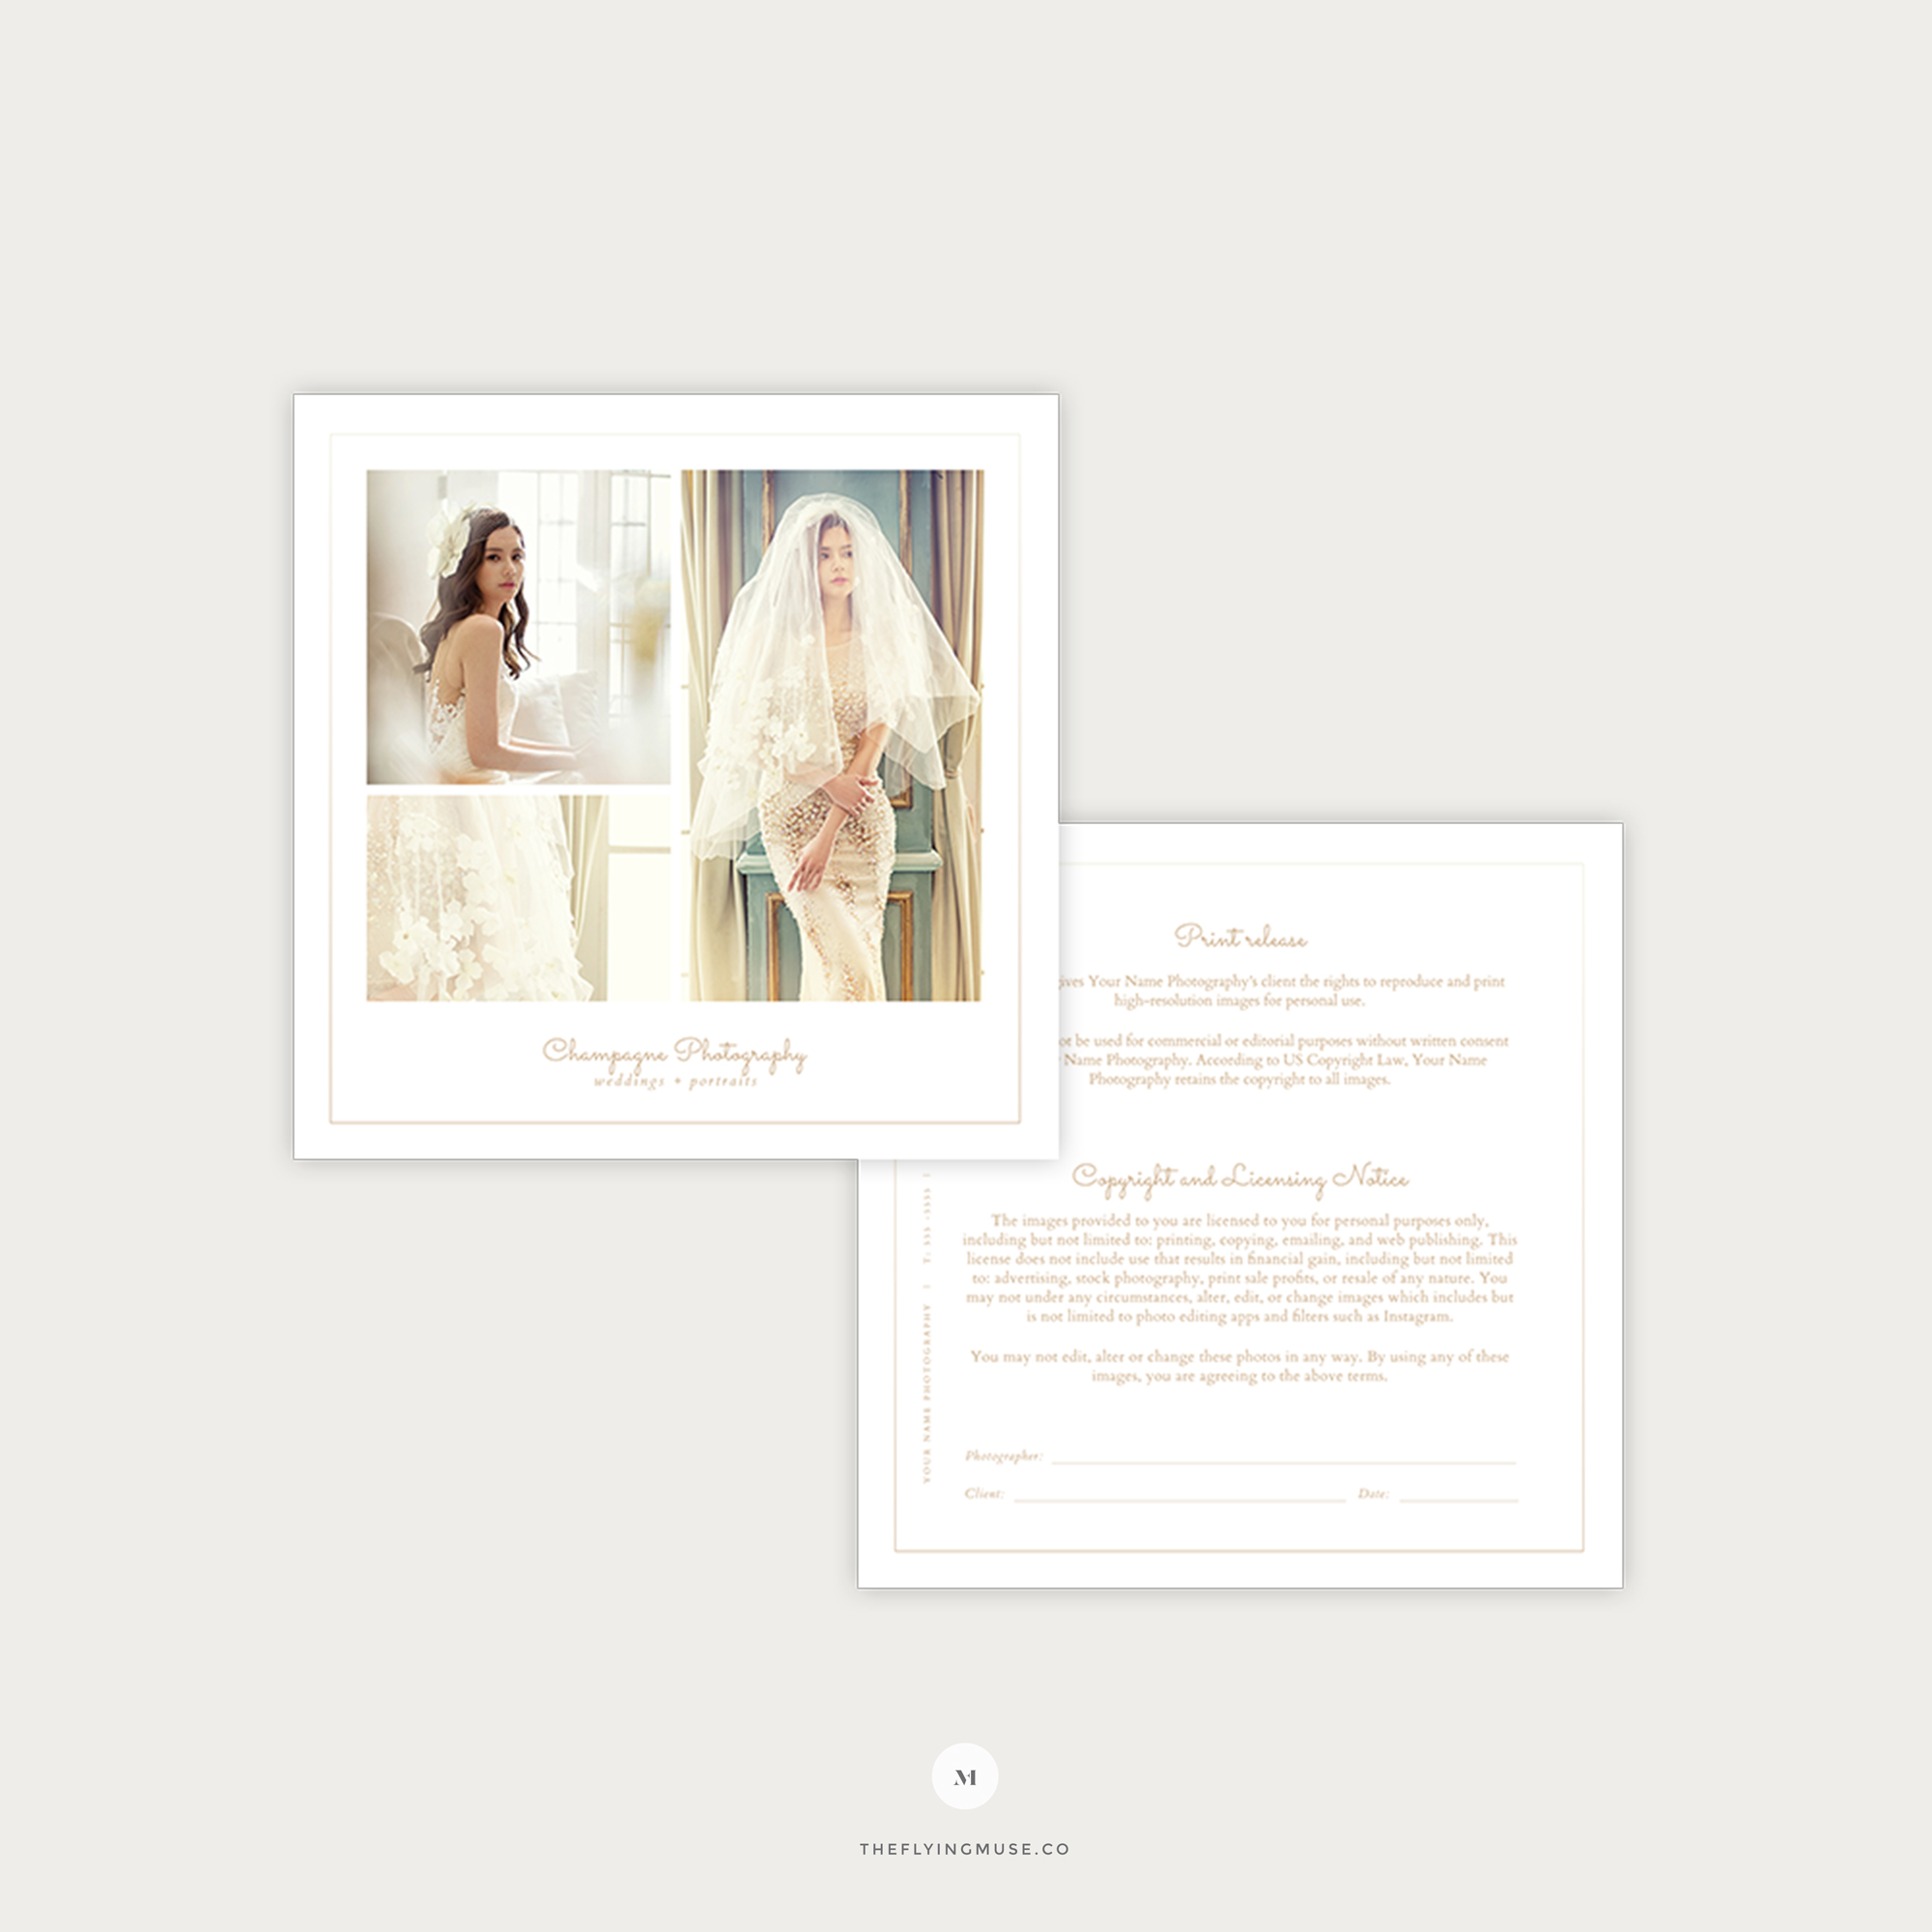 Minimal Wedding Photography Print Release Licensing Form Template Champagne Collection